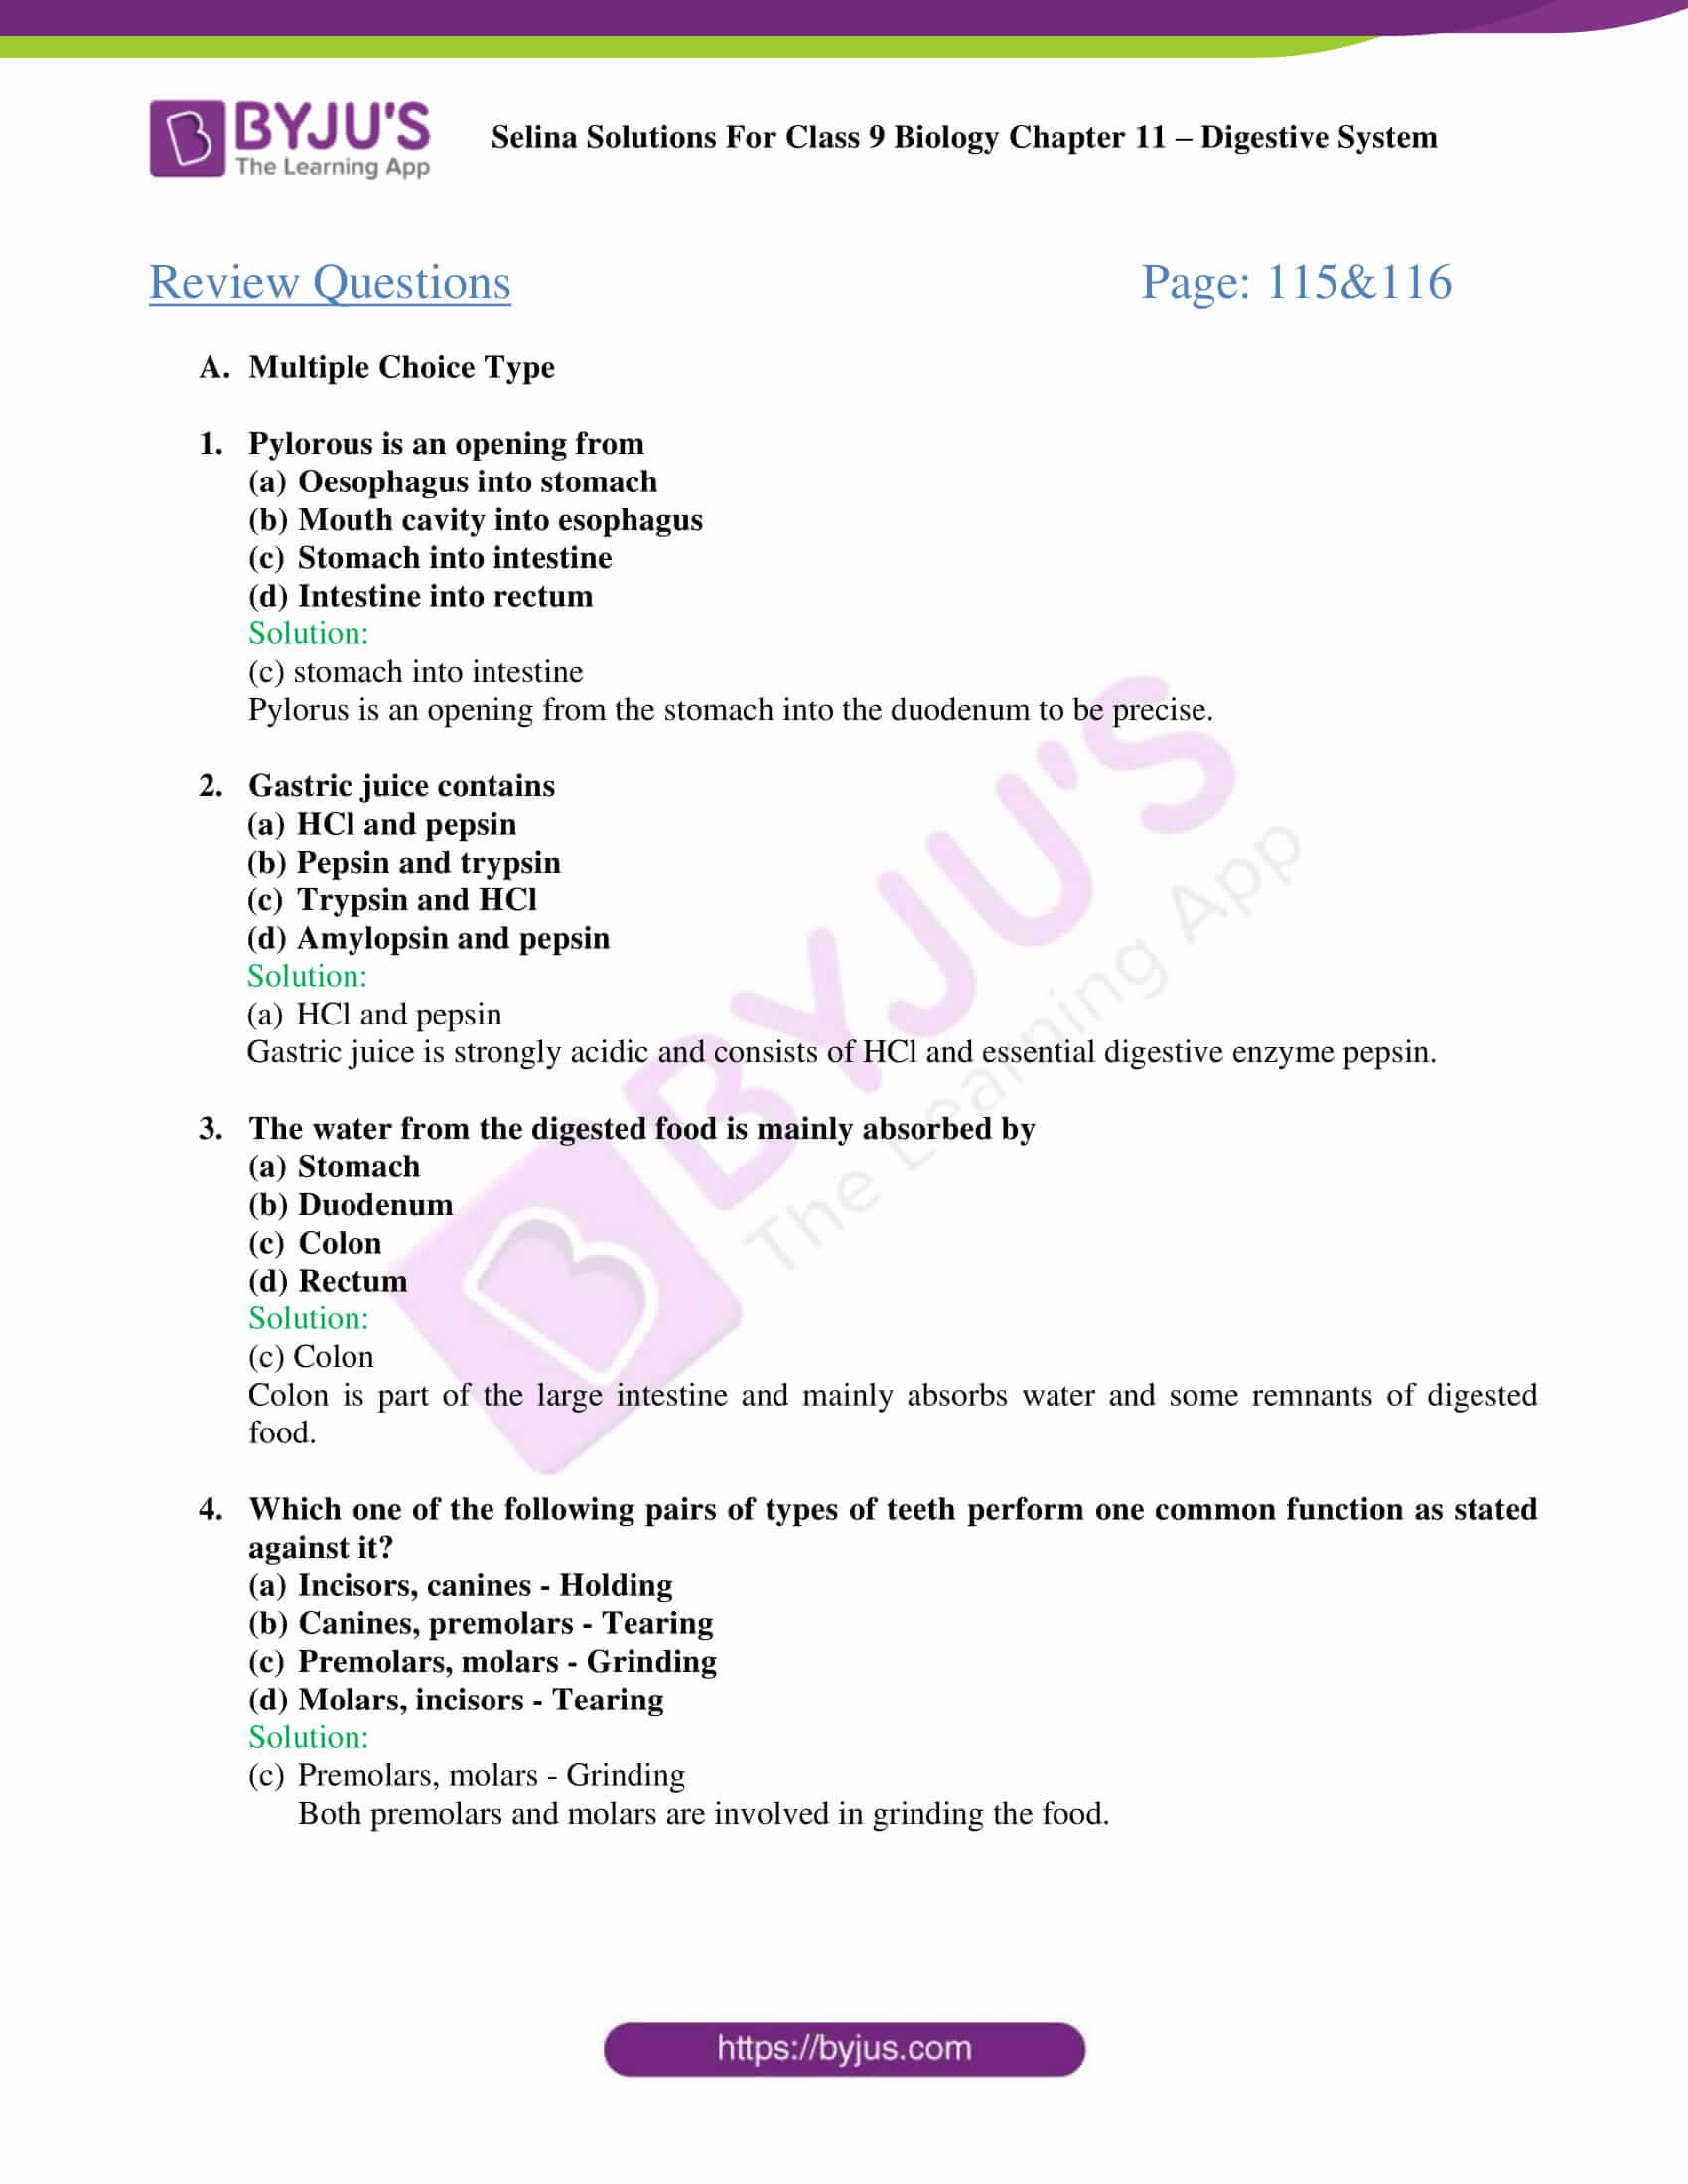 selina Solutions For Class 9 Biology Chapter 11 part 06